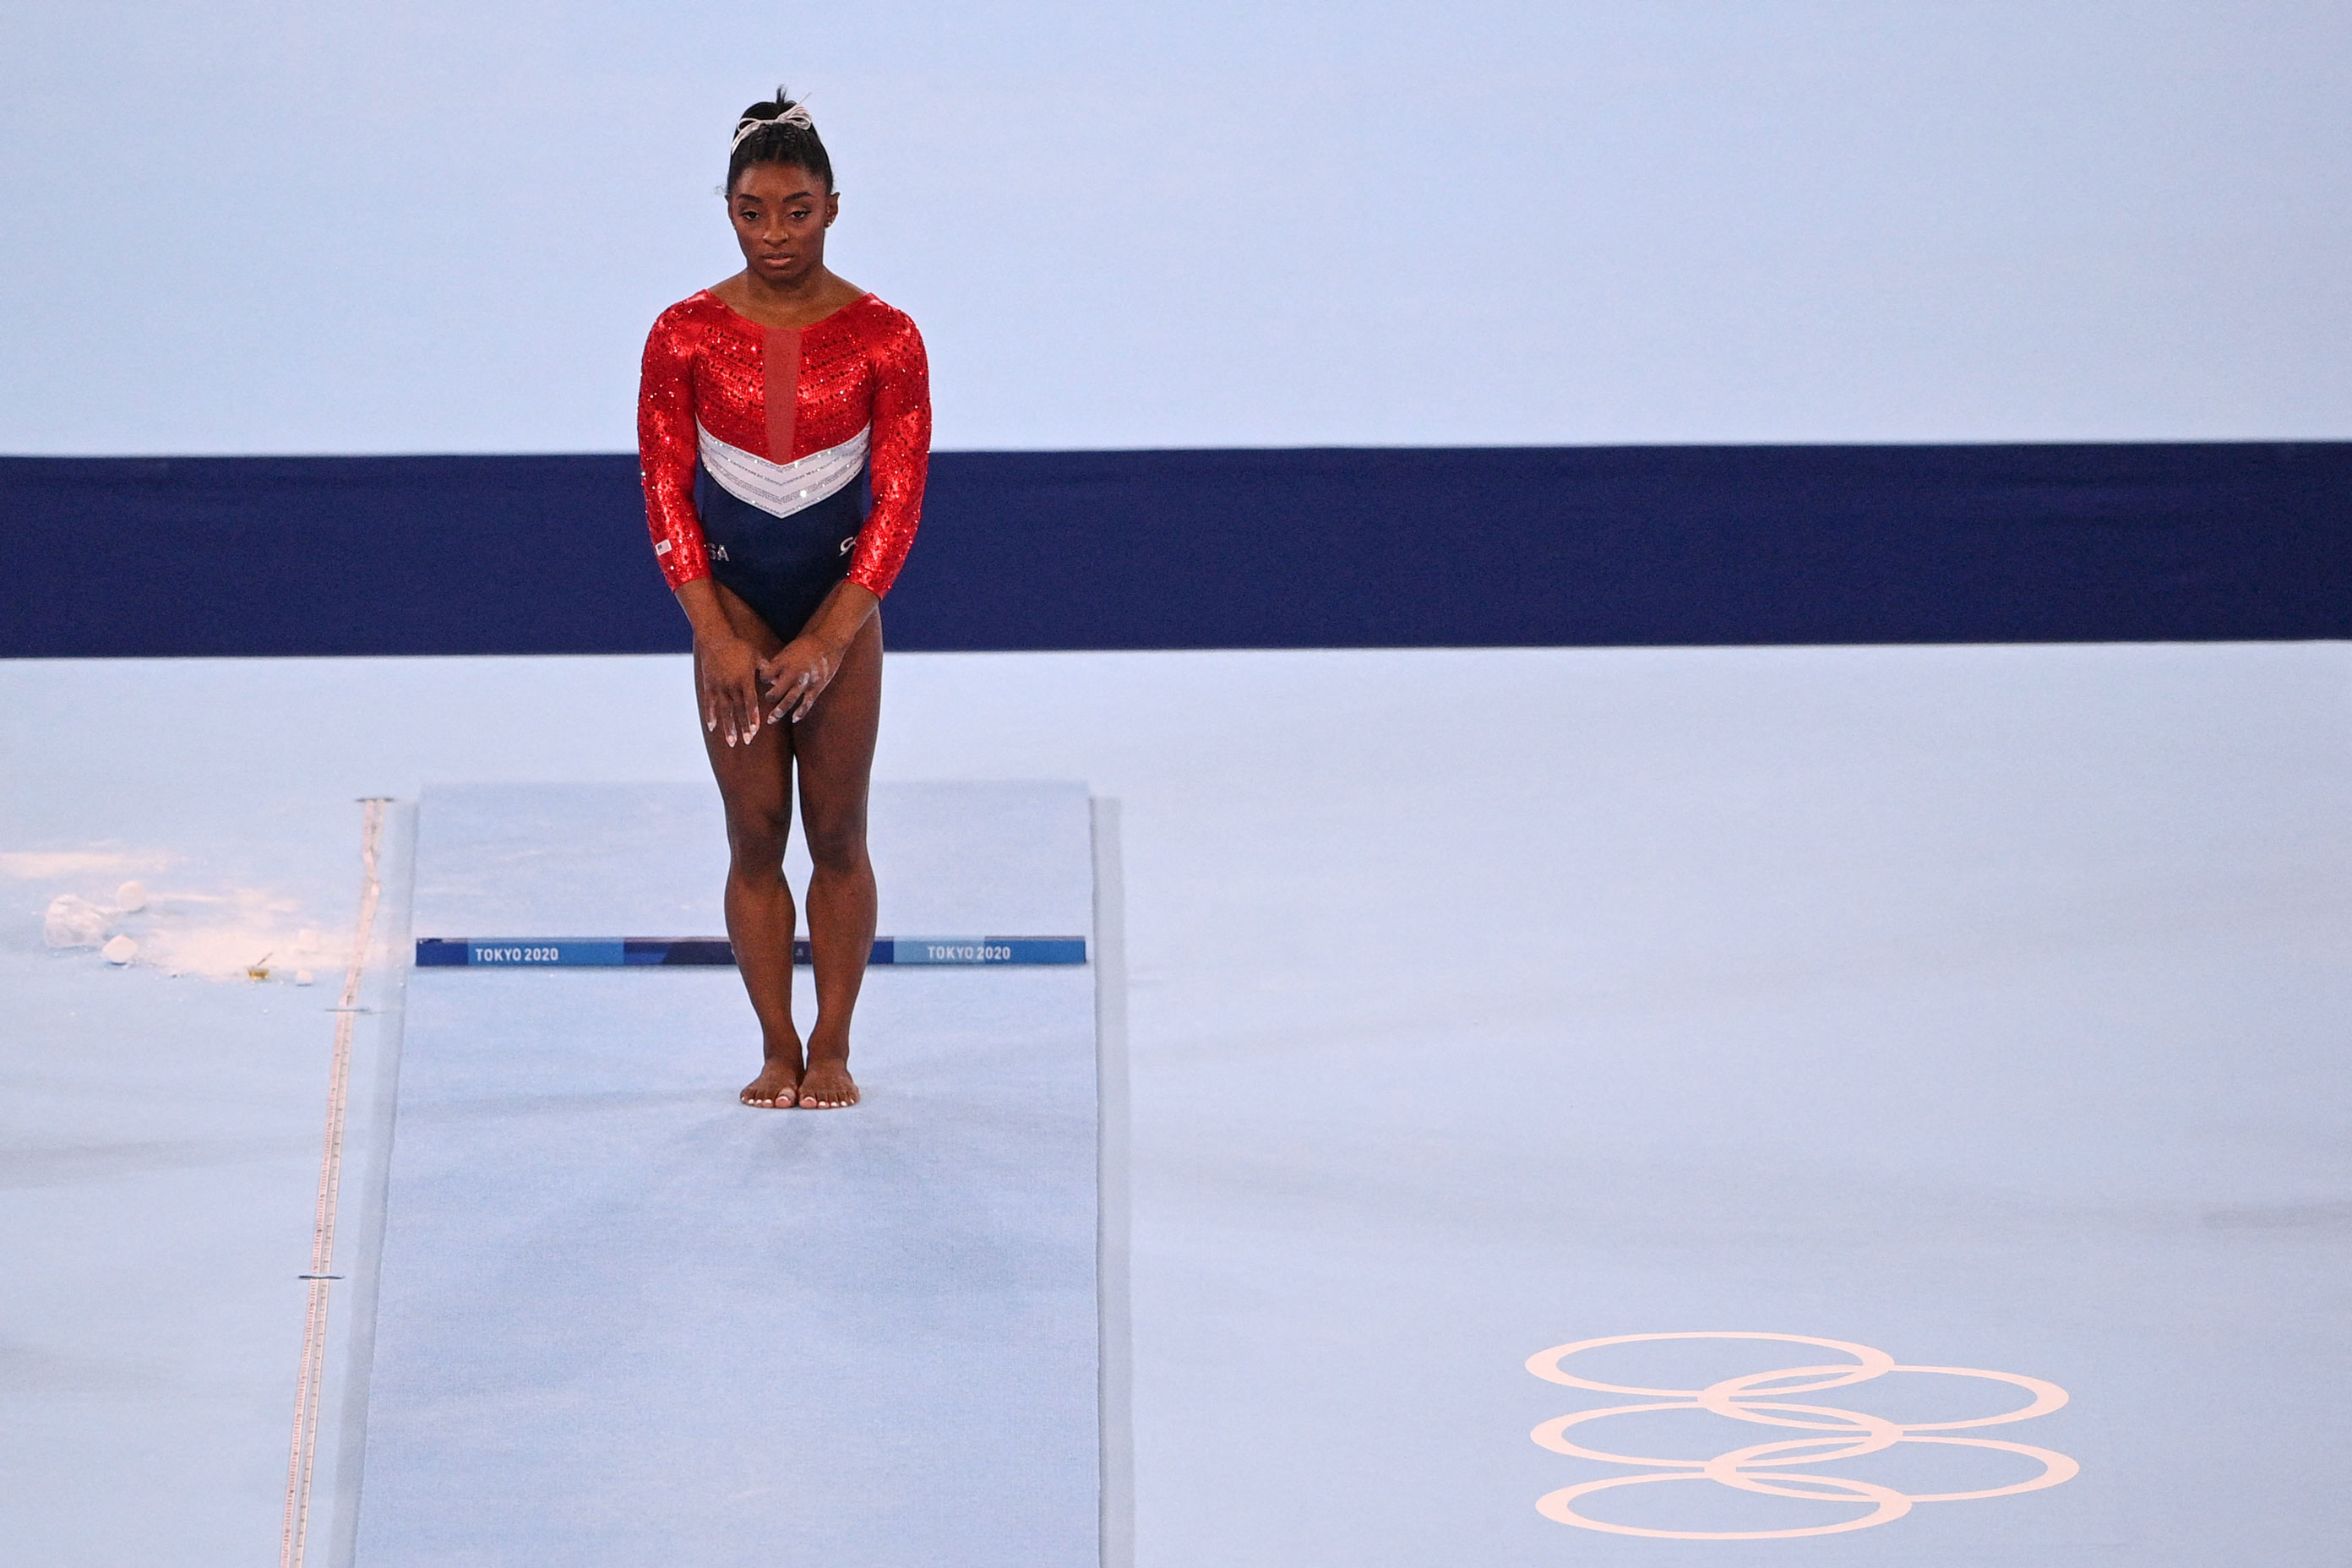 US gymnast Simone Biles waits before competing in the vault event during the team final on July 27.